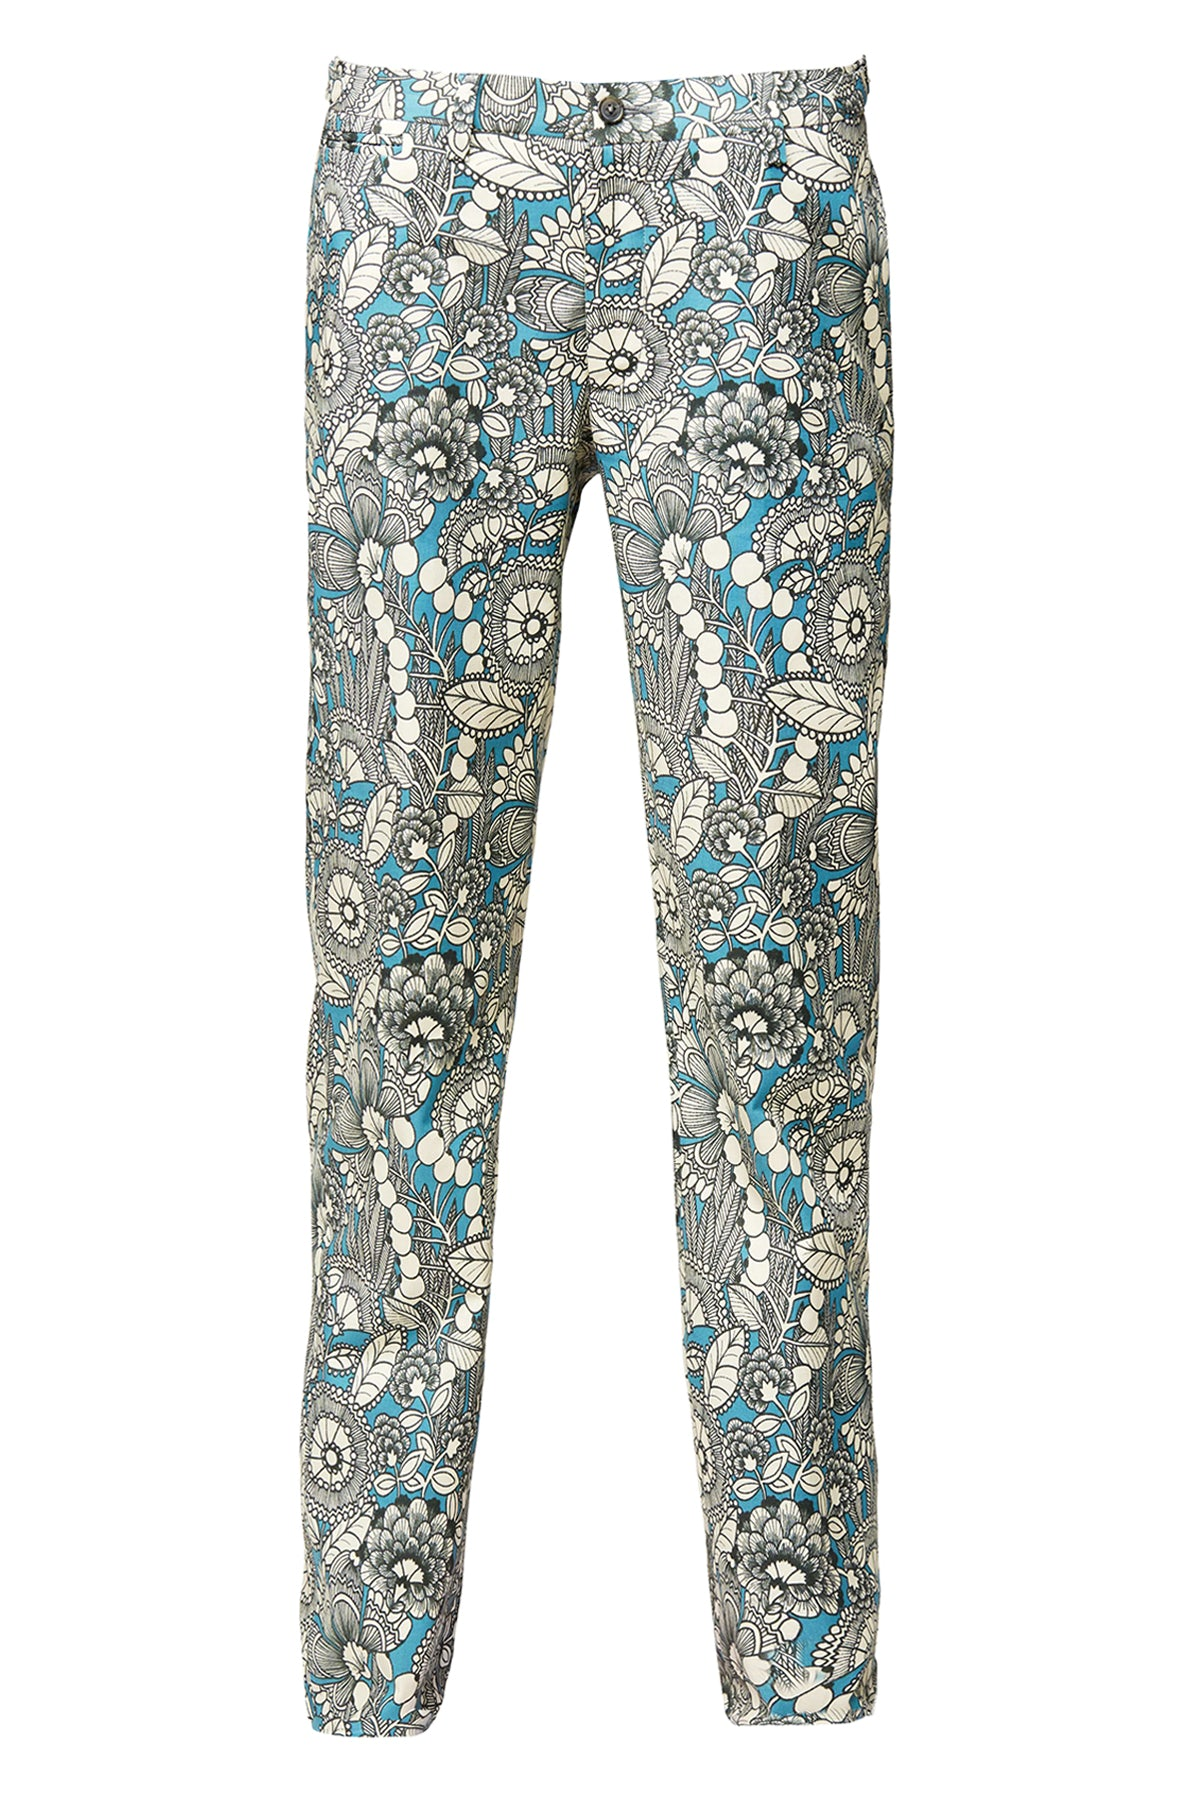 David August Teal Gardenia Trousers